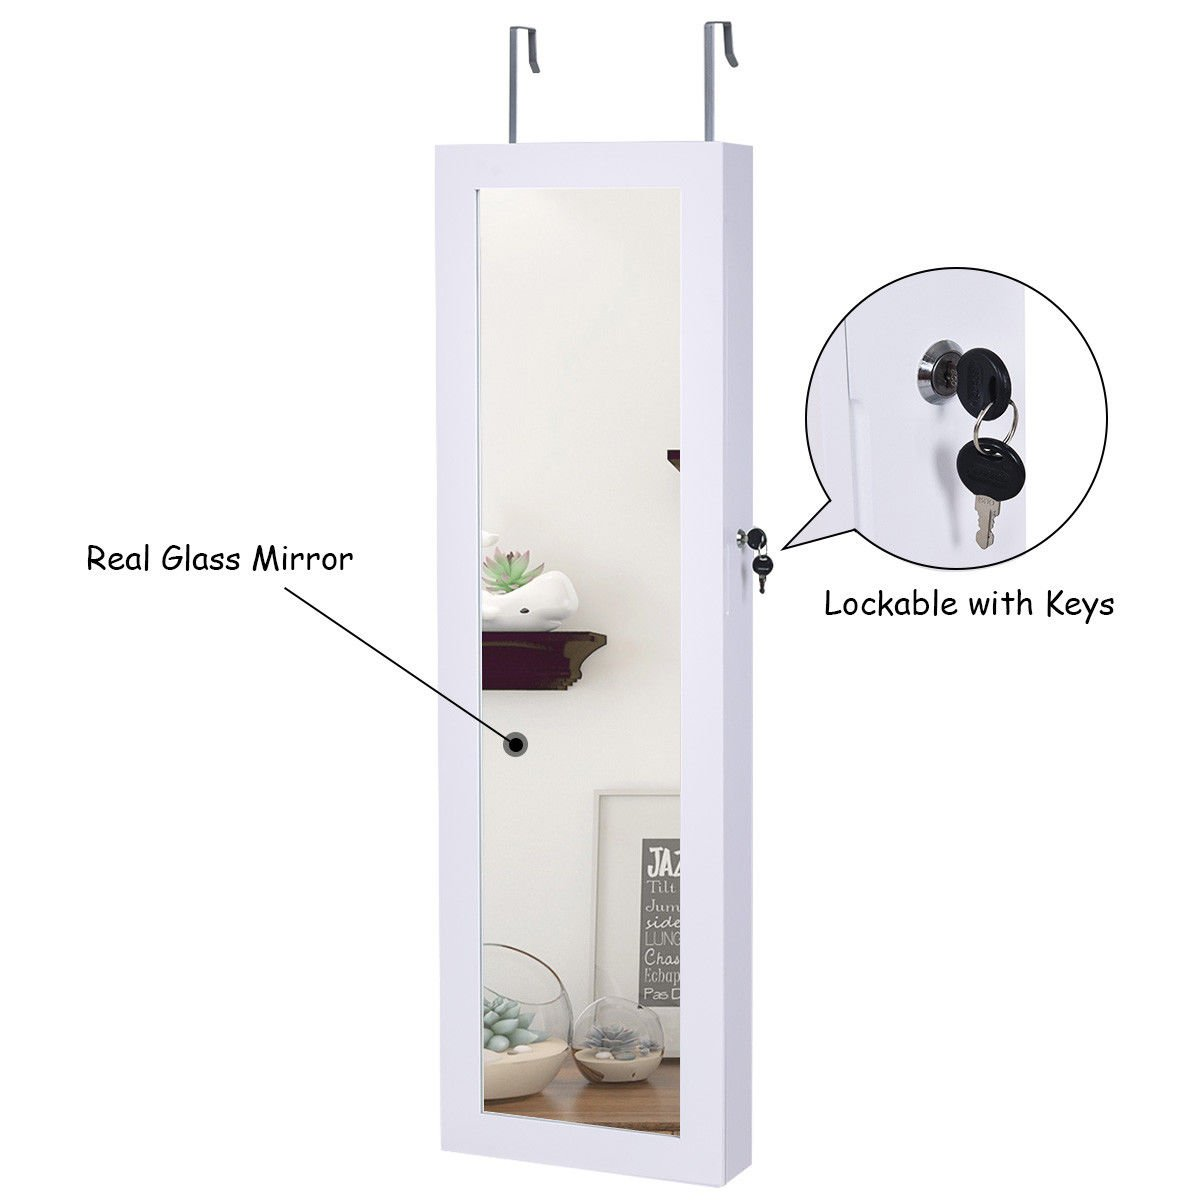 Giantex Wall Door Mounted Jewelry Armoire Organizer with Mirror Locking Organizer with LED Lights by Giantex (Image #7)